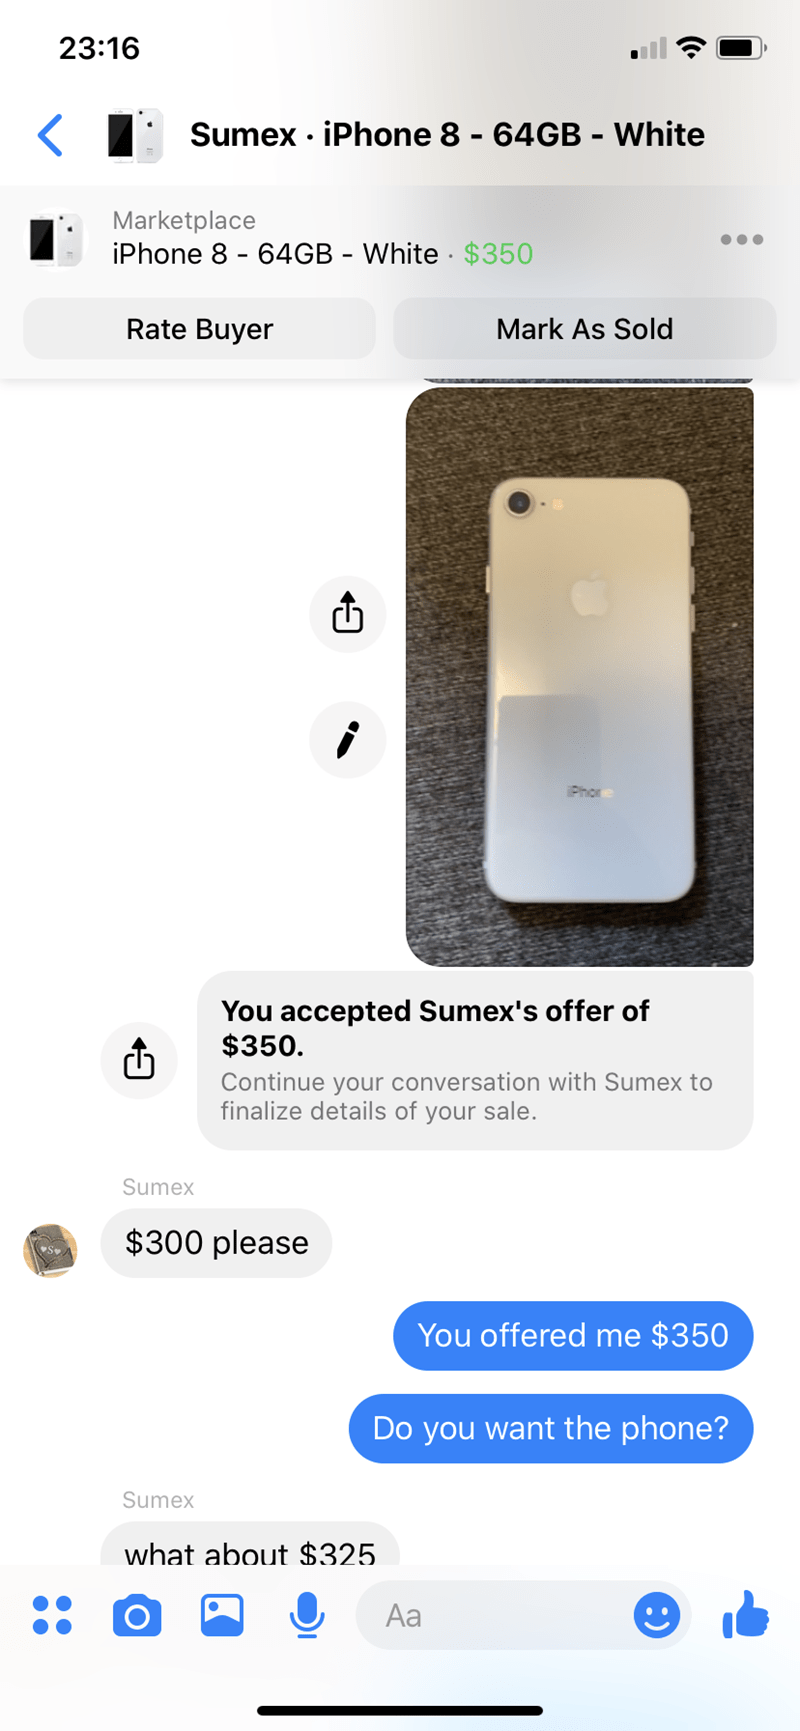 Text - 23:16 Sumex iPhone 8 - 64GB - White Marketplace iPhone 8 - 64GB - White $350 Rate Buyer Mark As Sold iPhor You accepted Sumex's offer of $350. Continue your conversation with Sumex to finalize details of your sale. Sumex $300 please S You offered me $350 Do you want the phone? Sumex what about $325. Aa